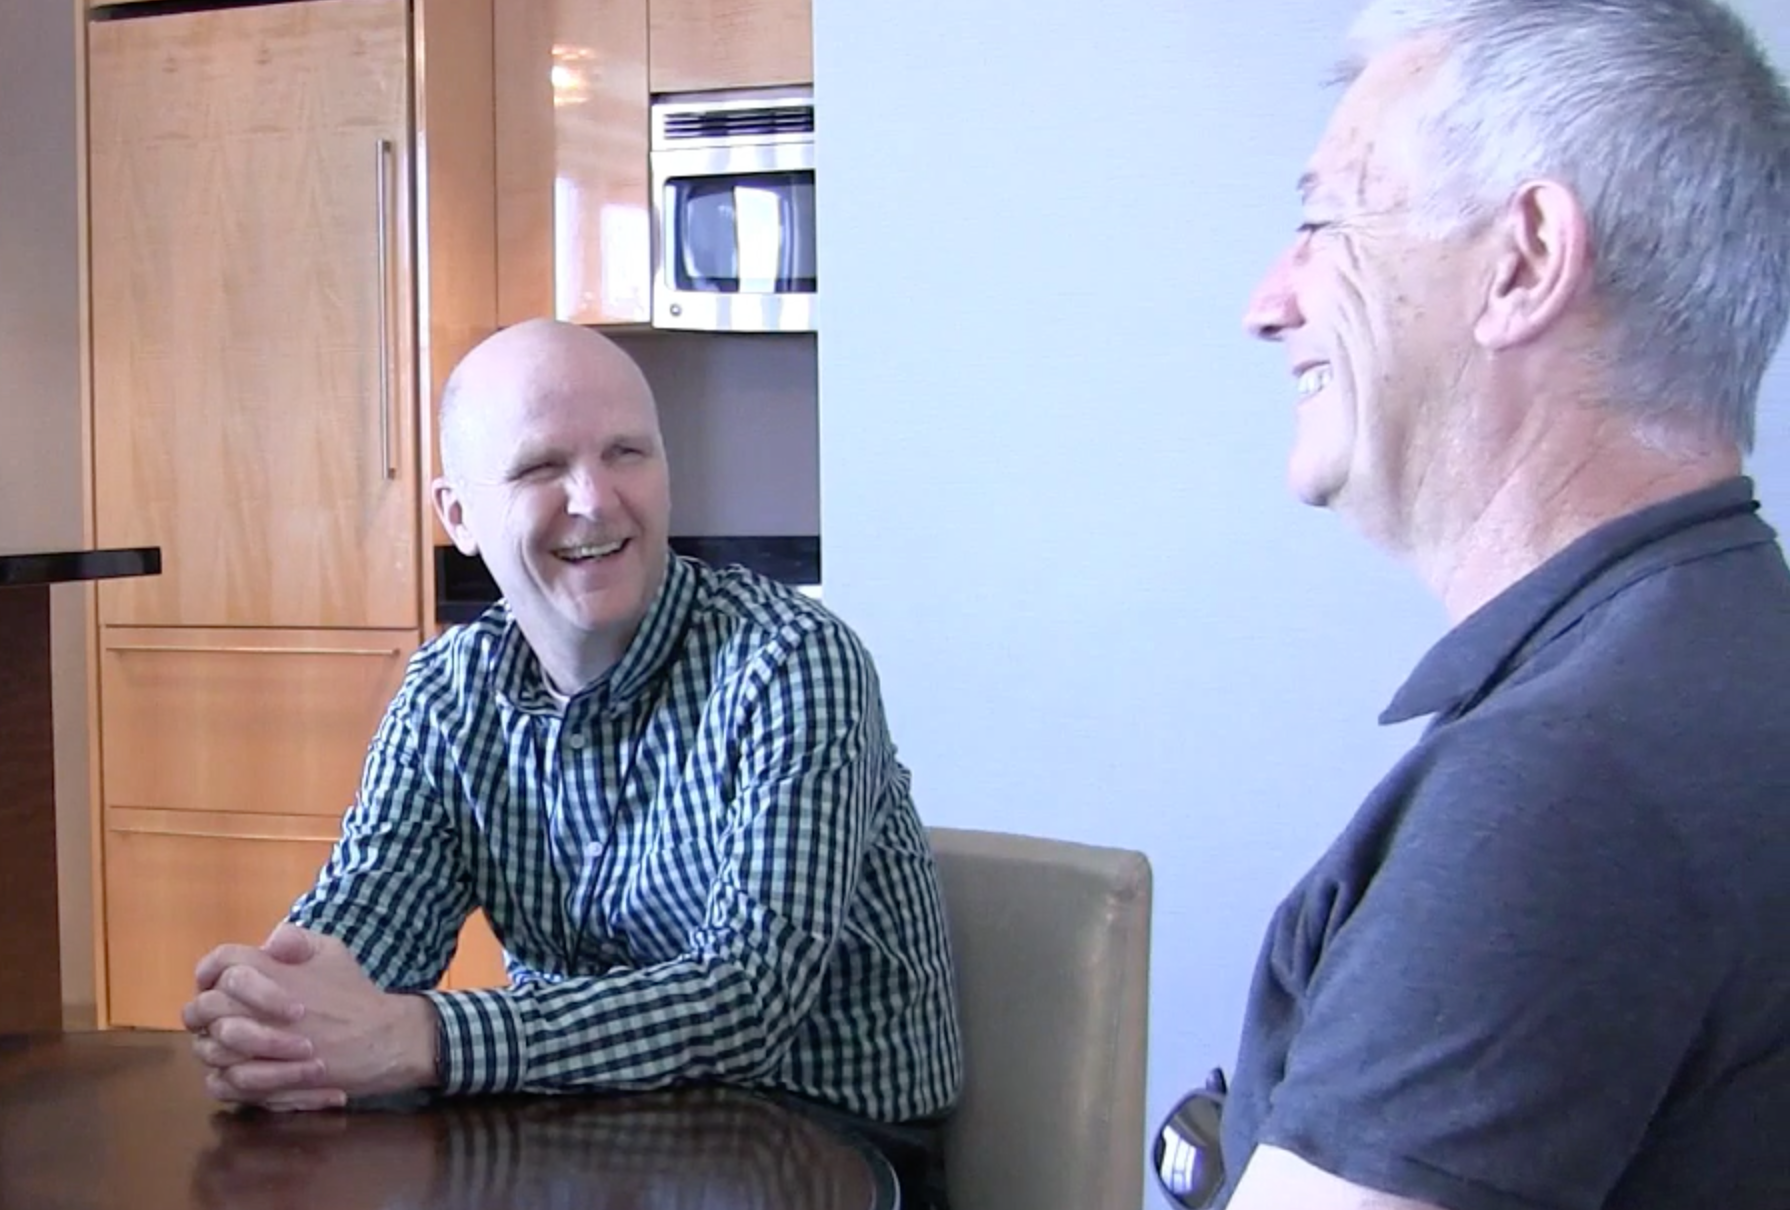 FileMaker Developer Interviews -William Miller, Gordon Cox, and Jimmy Cox